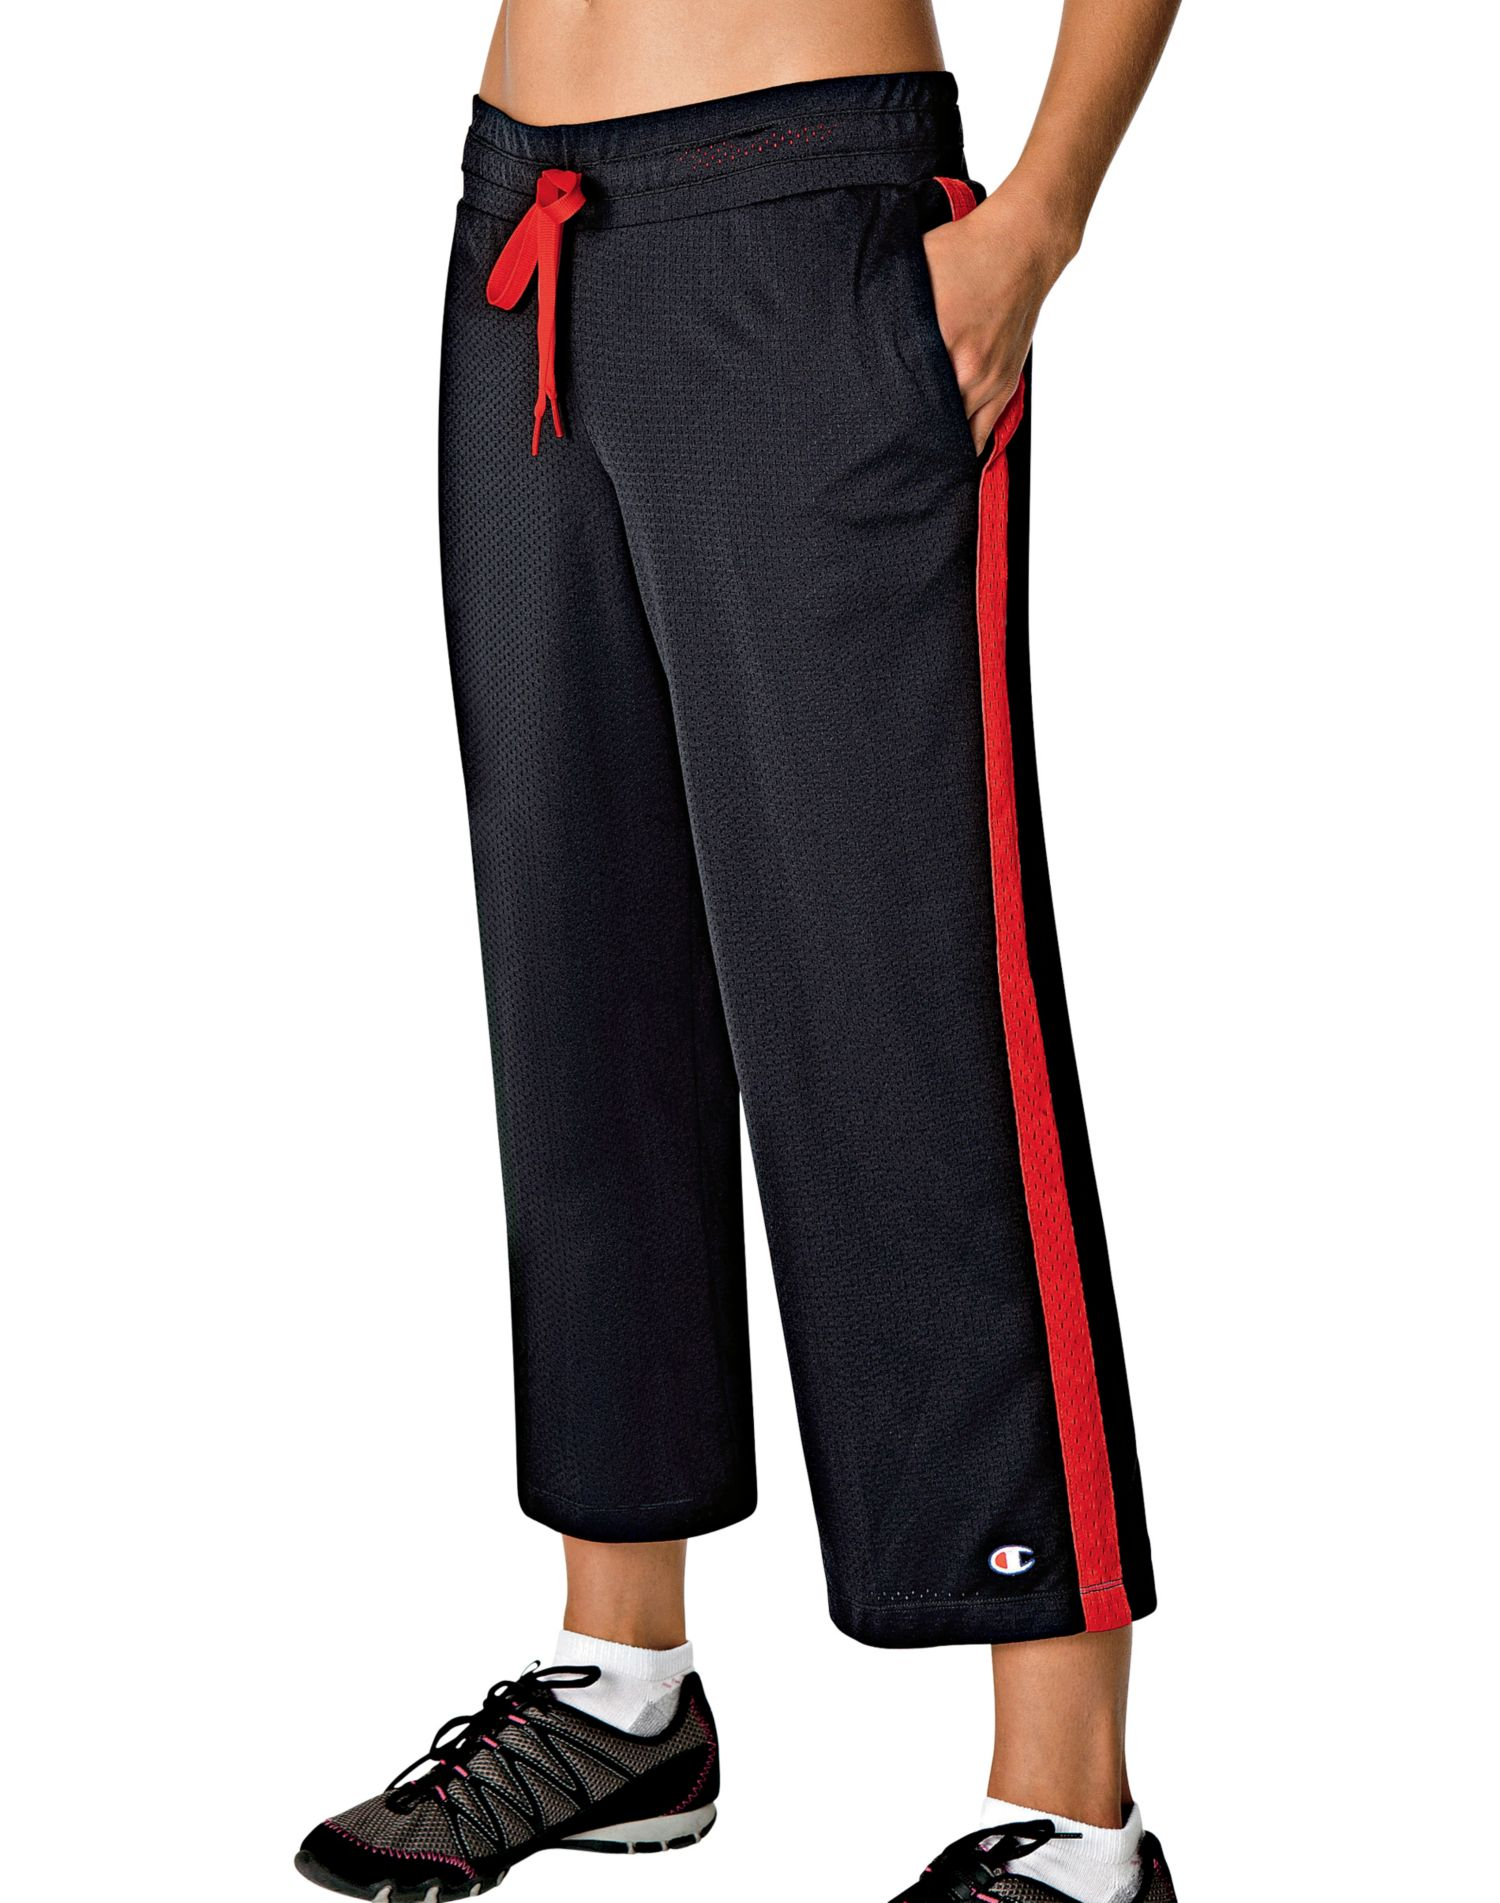 Beautiful Available In A Wide Range Of Sizes For Men And Women Click For More Details And Sizing 5 Rail Riders EcoMesh Pants With Insect Shield Rail Riders EcoMesh